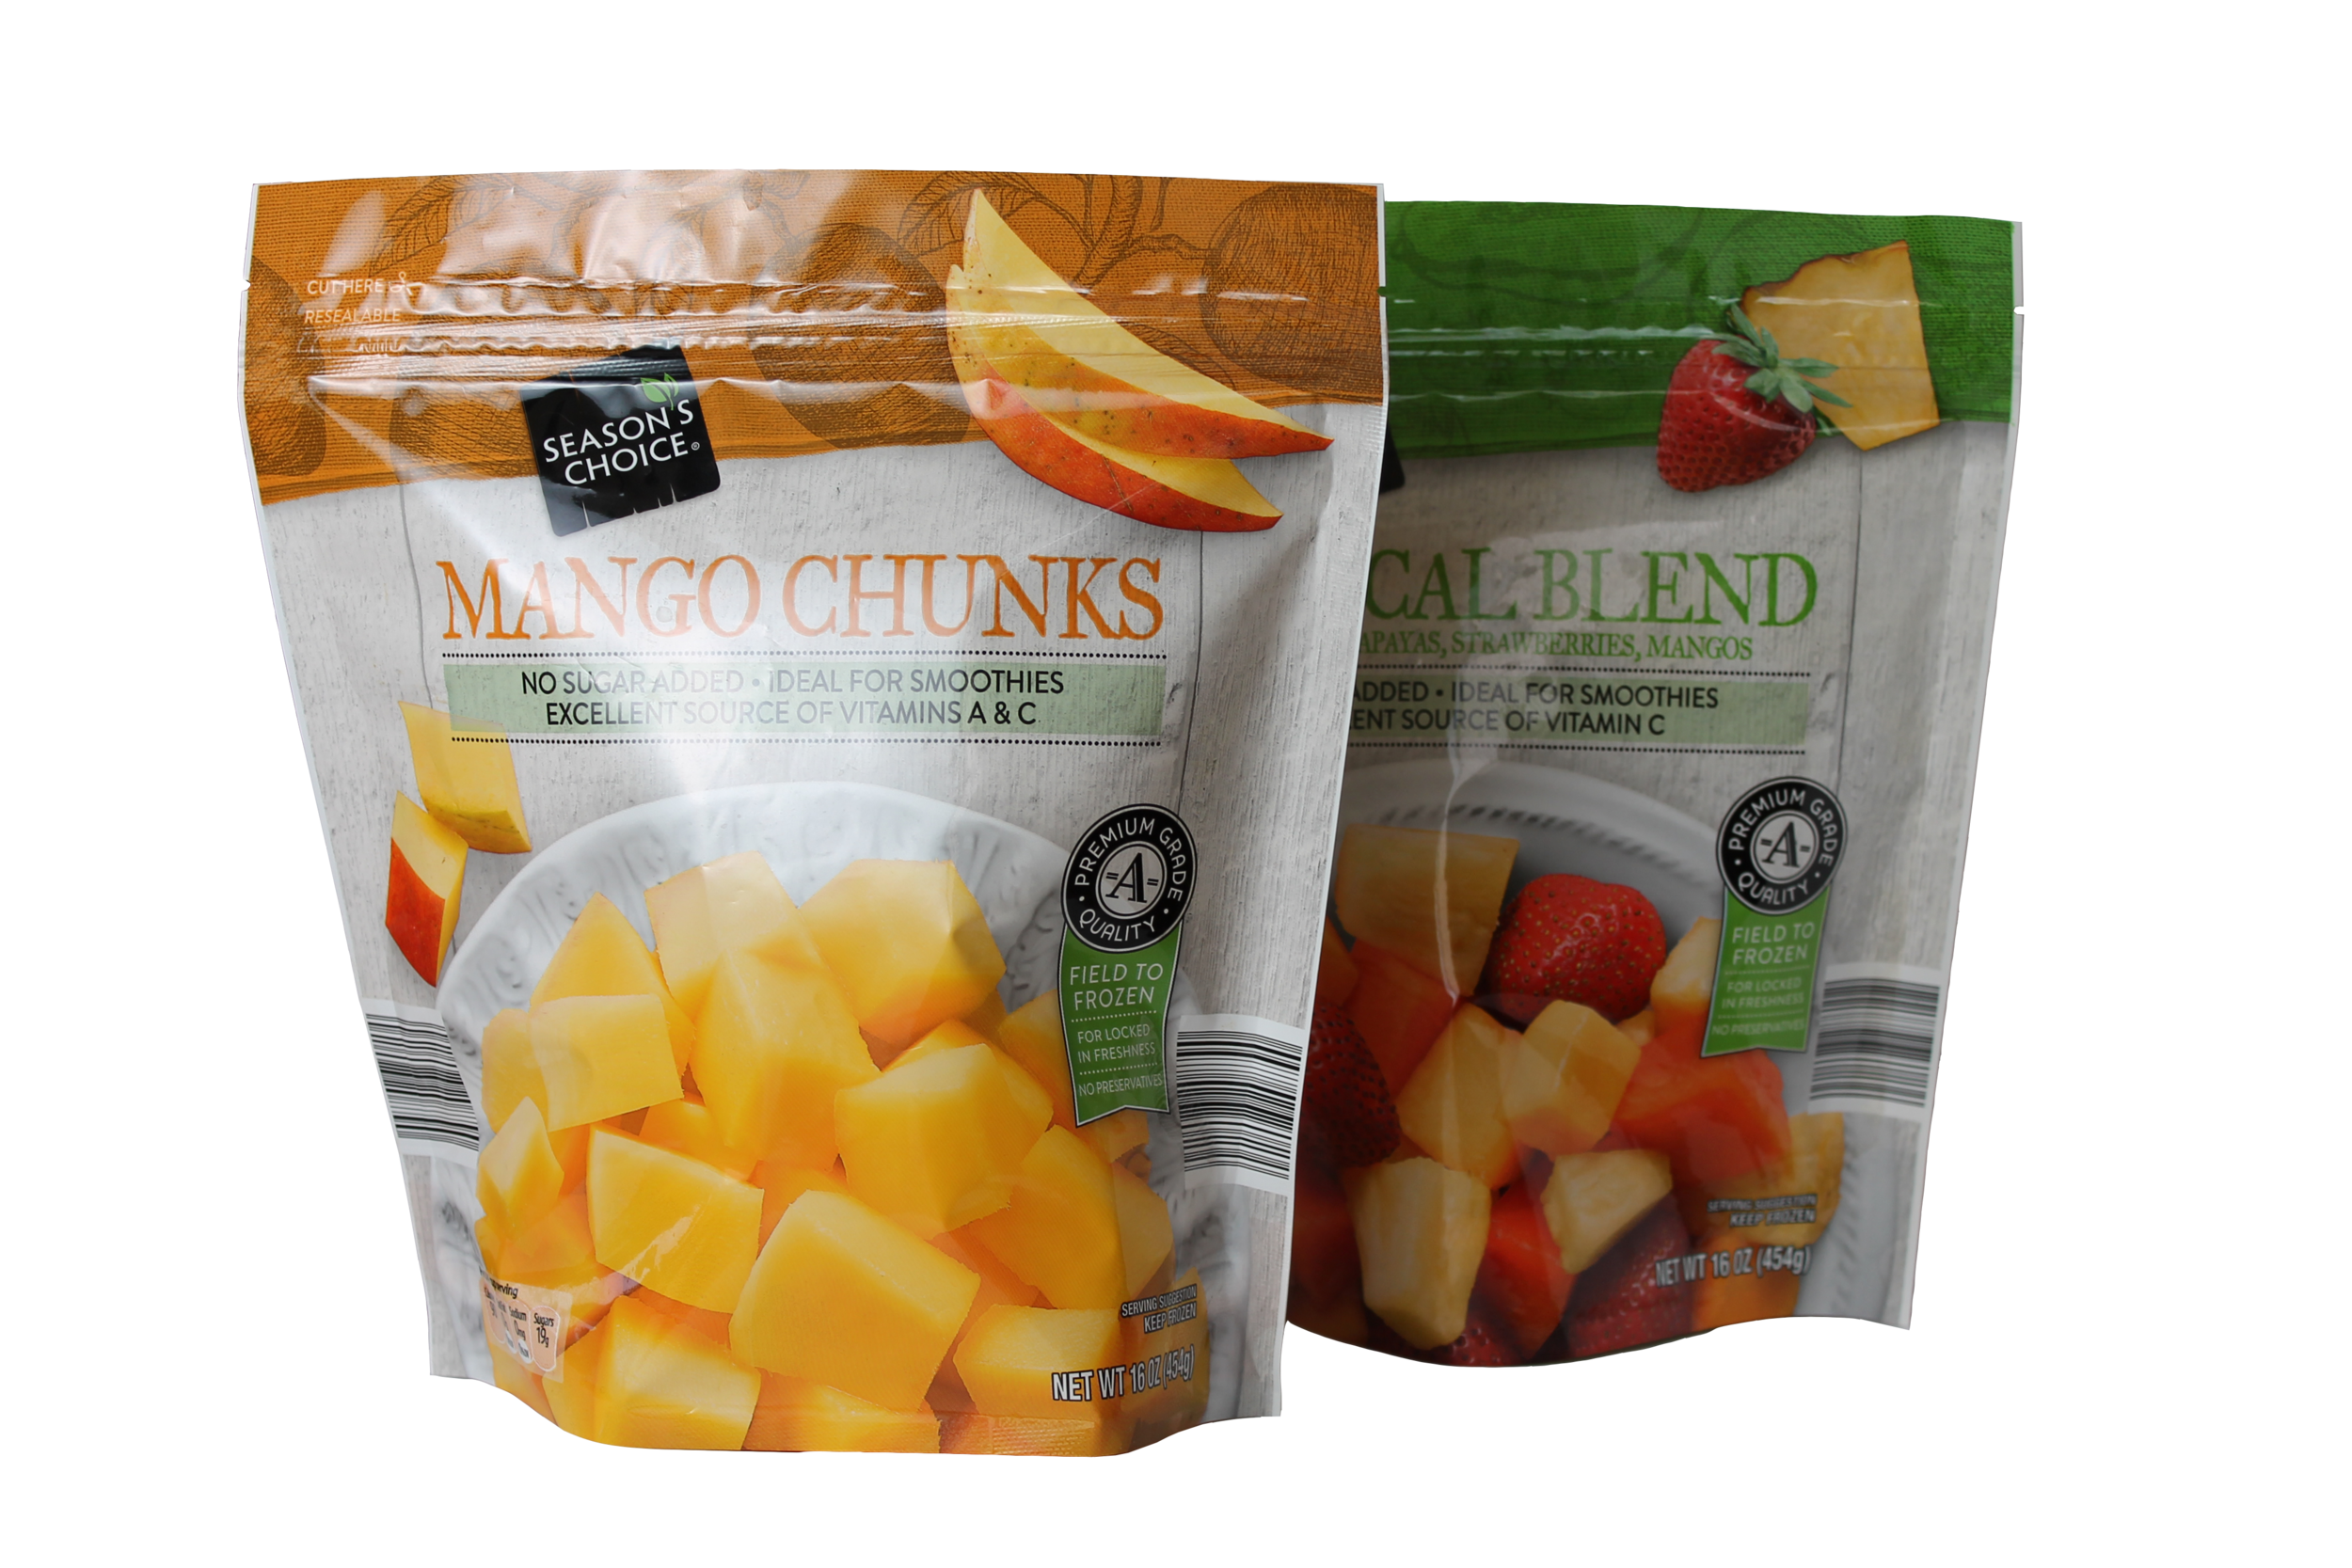 ALDI Season's Choice Mango & Tropical Blend Frozen Fruit